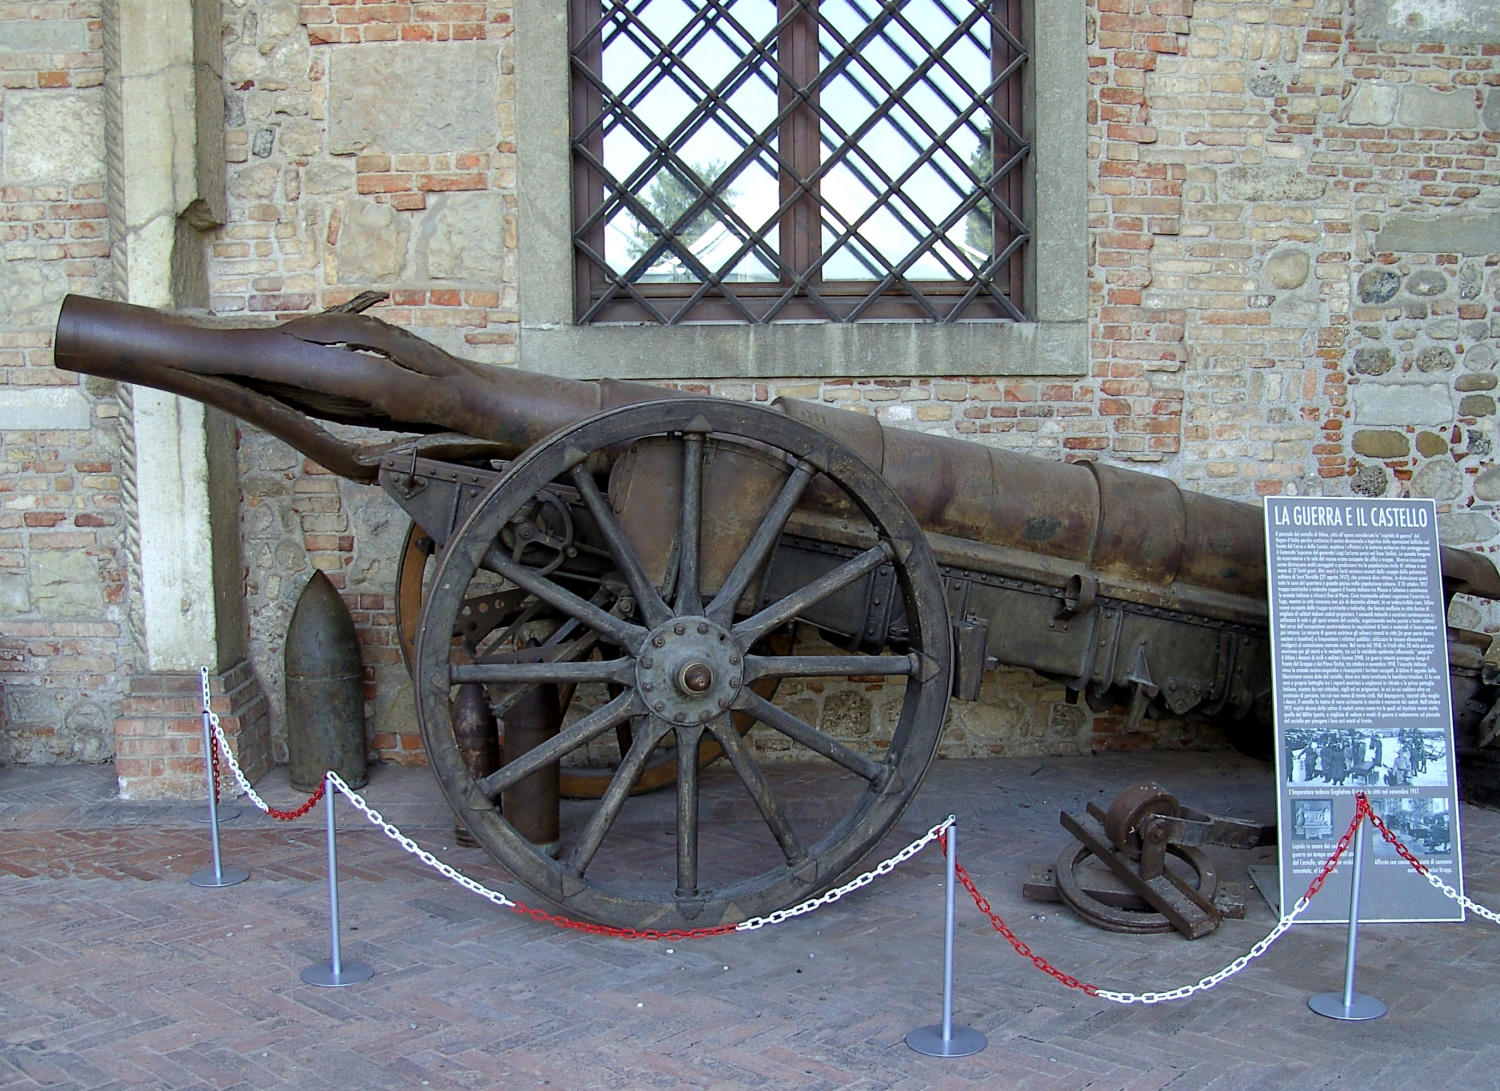 This photo shows what can happen to an Italian Krupp-canon that has experienced a squib load, and similar damage can occur in modern hand-held firearms as well.